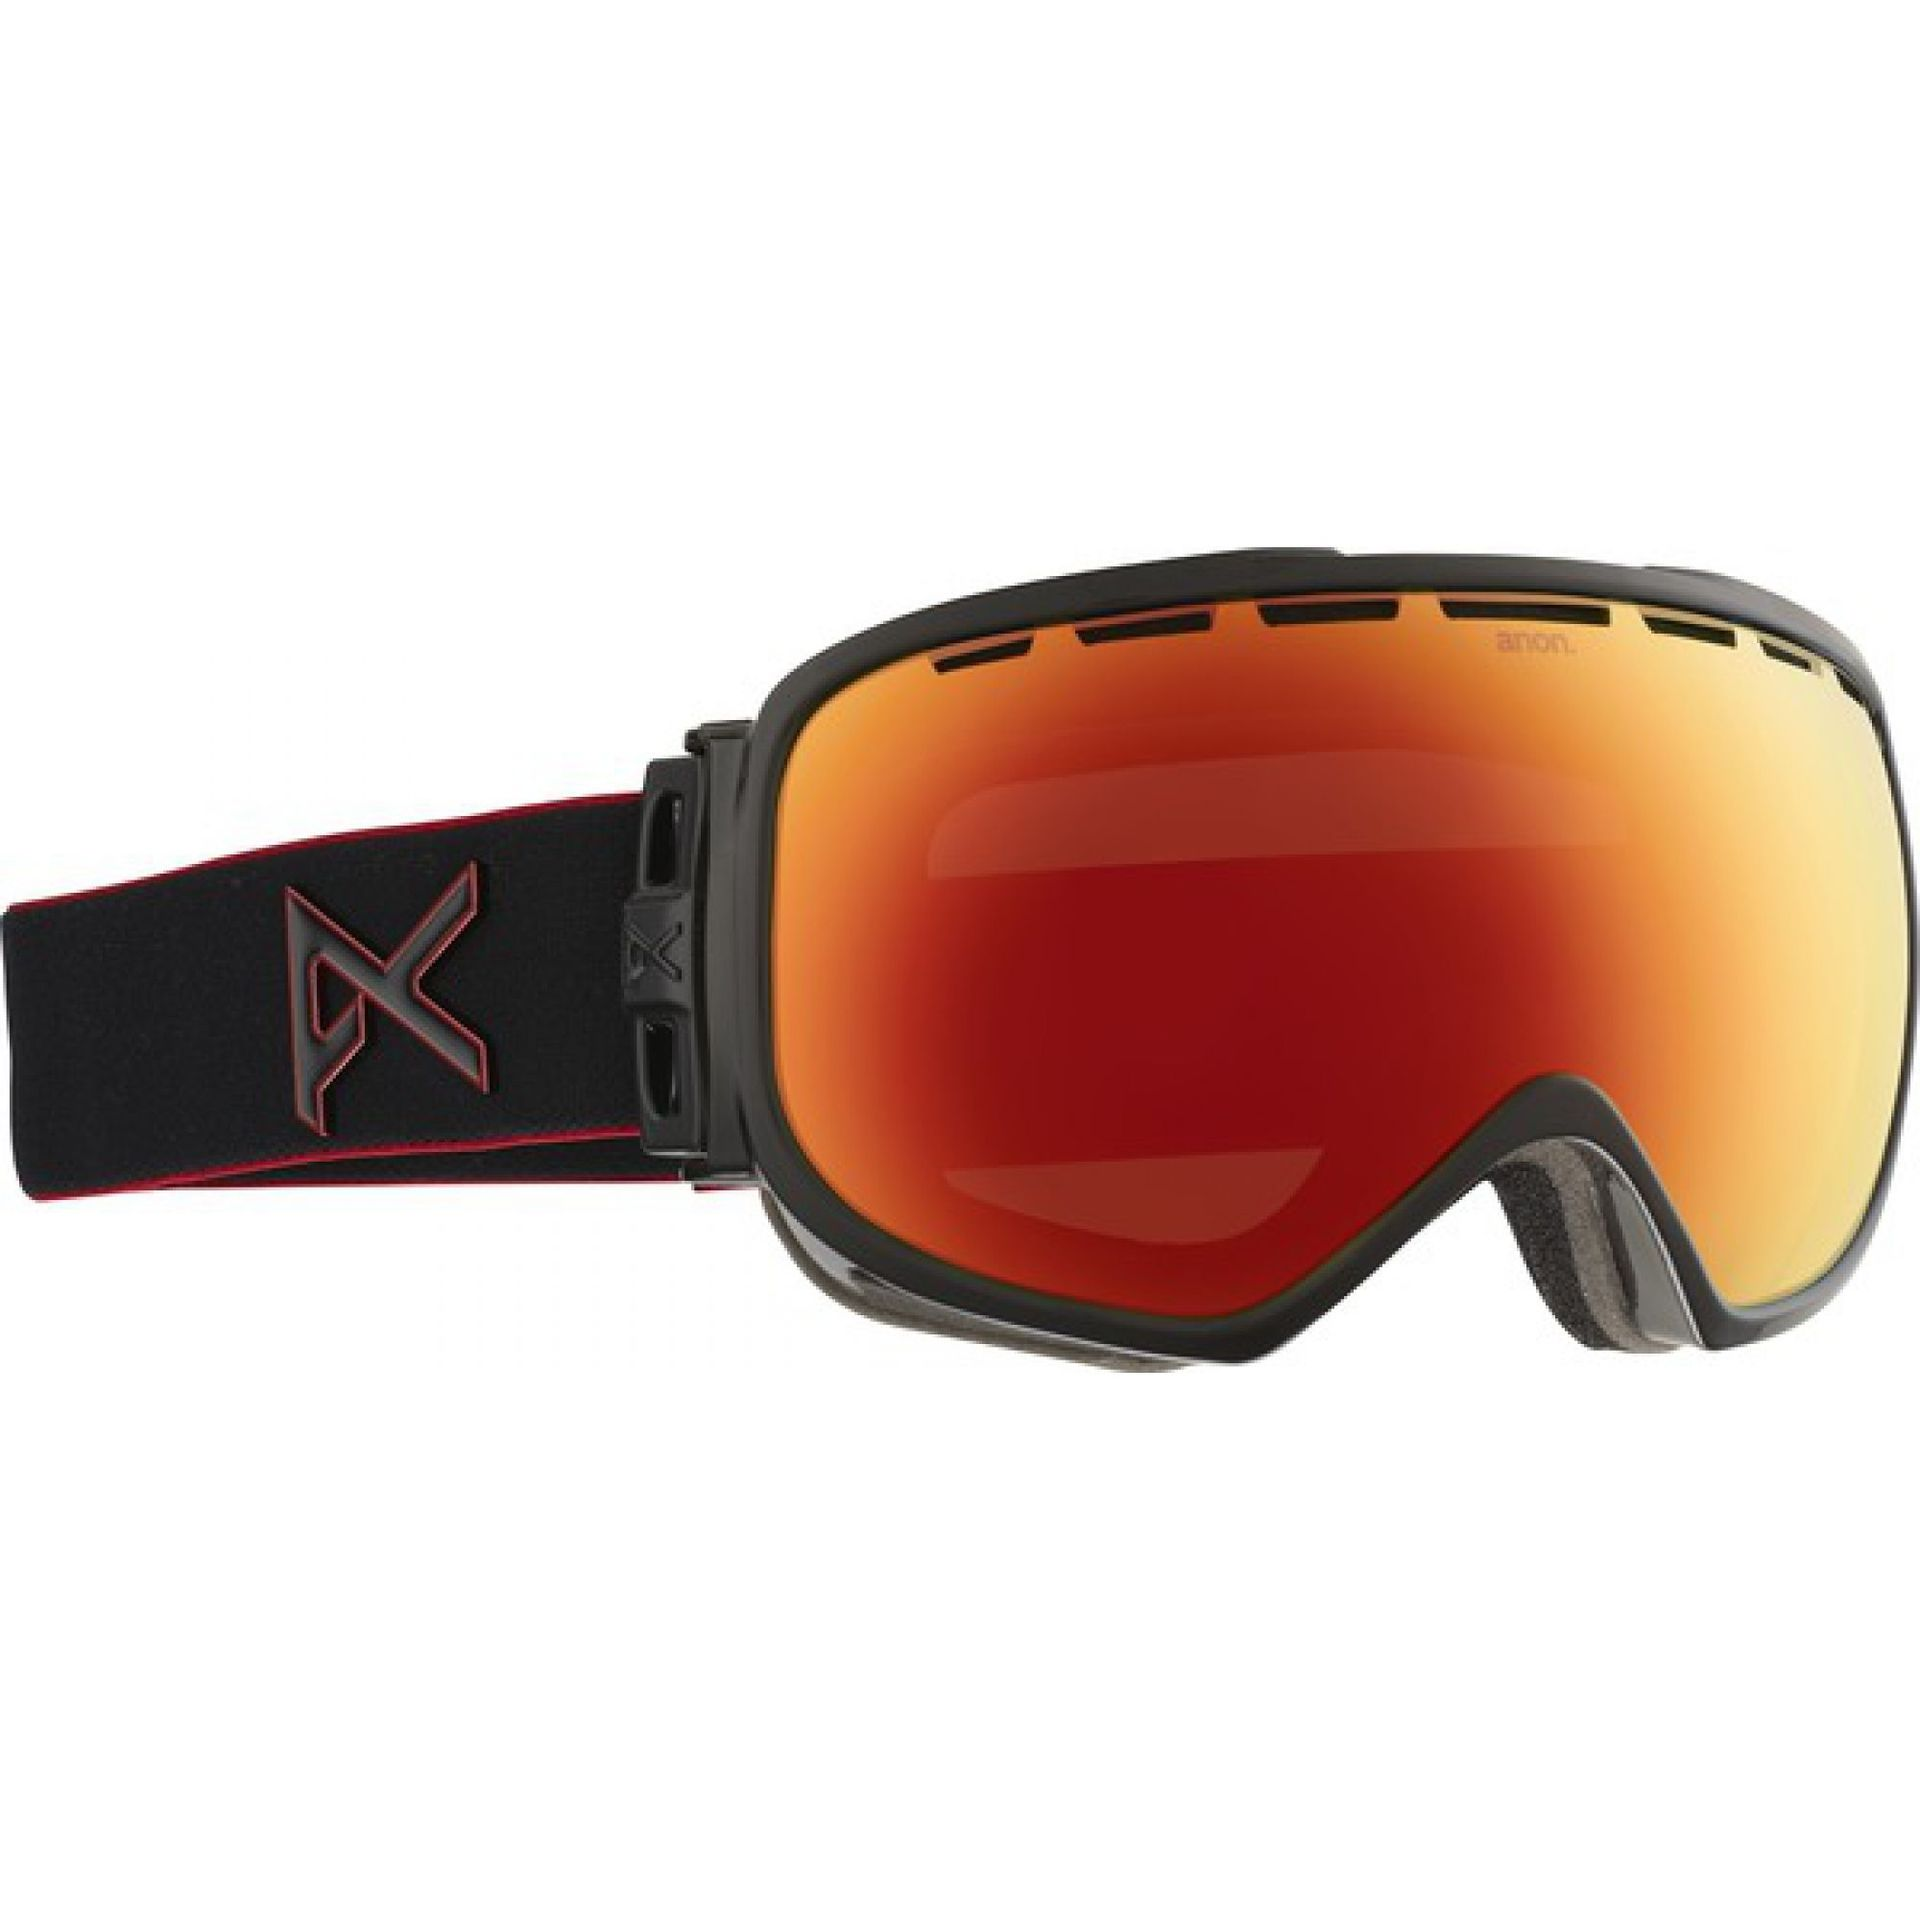 GOGLE ANON INSURGENT BLACK EMBLEM|RED SOLEX